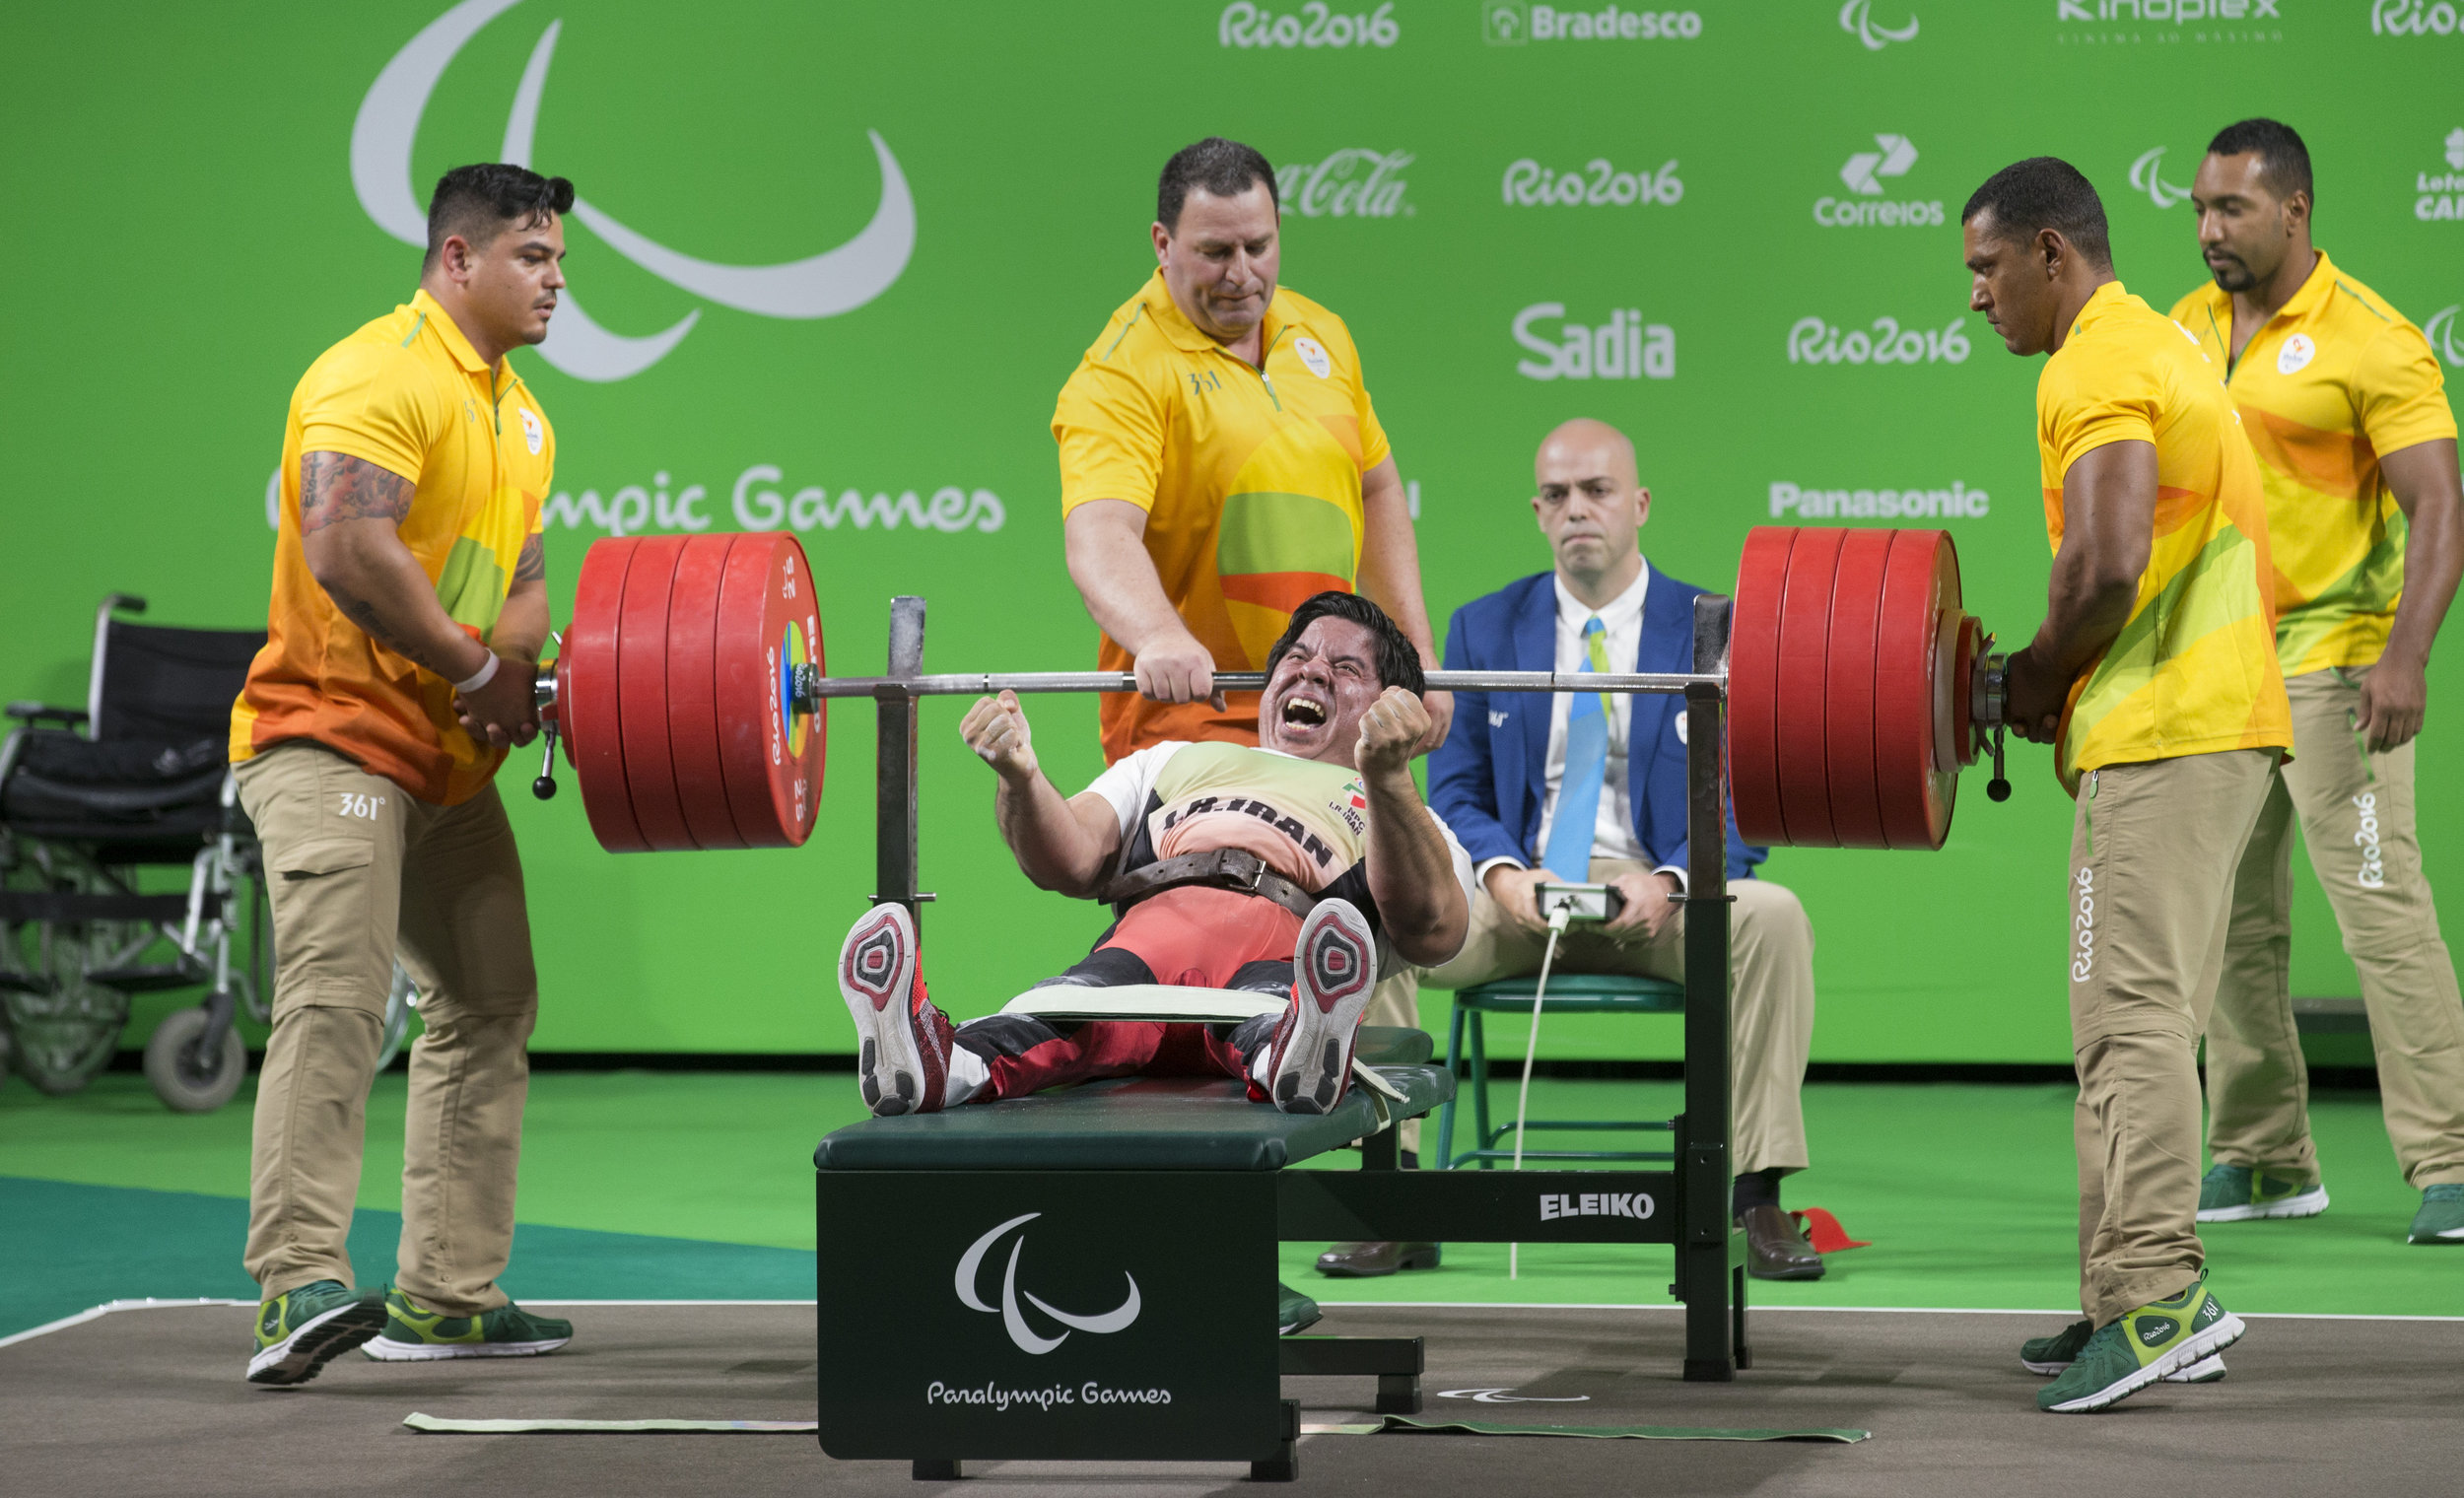 Majid Farzim, of Iran, celebrates after breaking the Paralympic and world records in the 80 kg class at the 2016 Paralympic Games in Rio de Janeiro on Monday, Sept. 12, 2016. The 2012 Paralympic gold medalist lifted 240 kgs to beat the existing record and win gold again.